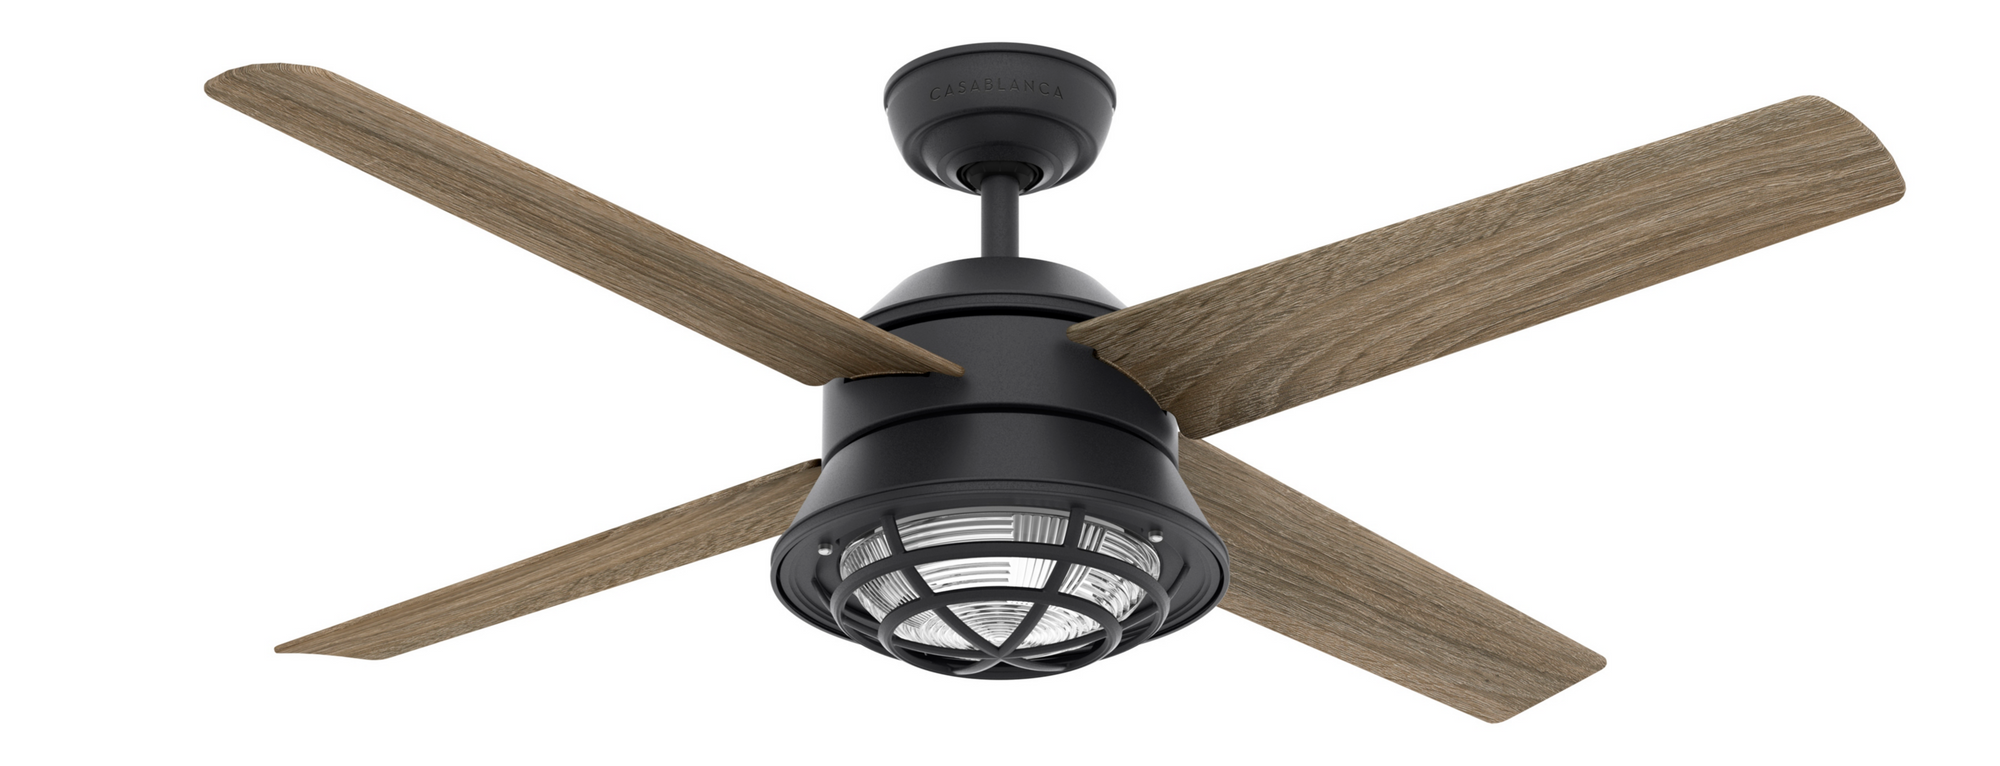 Casablanca Indoor/Outdoor Seafarer Ceiling Fan with LED LightJD inch, Iron/Pewter, 59574